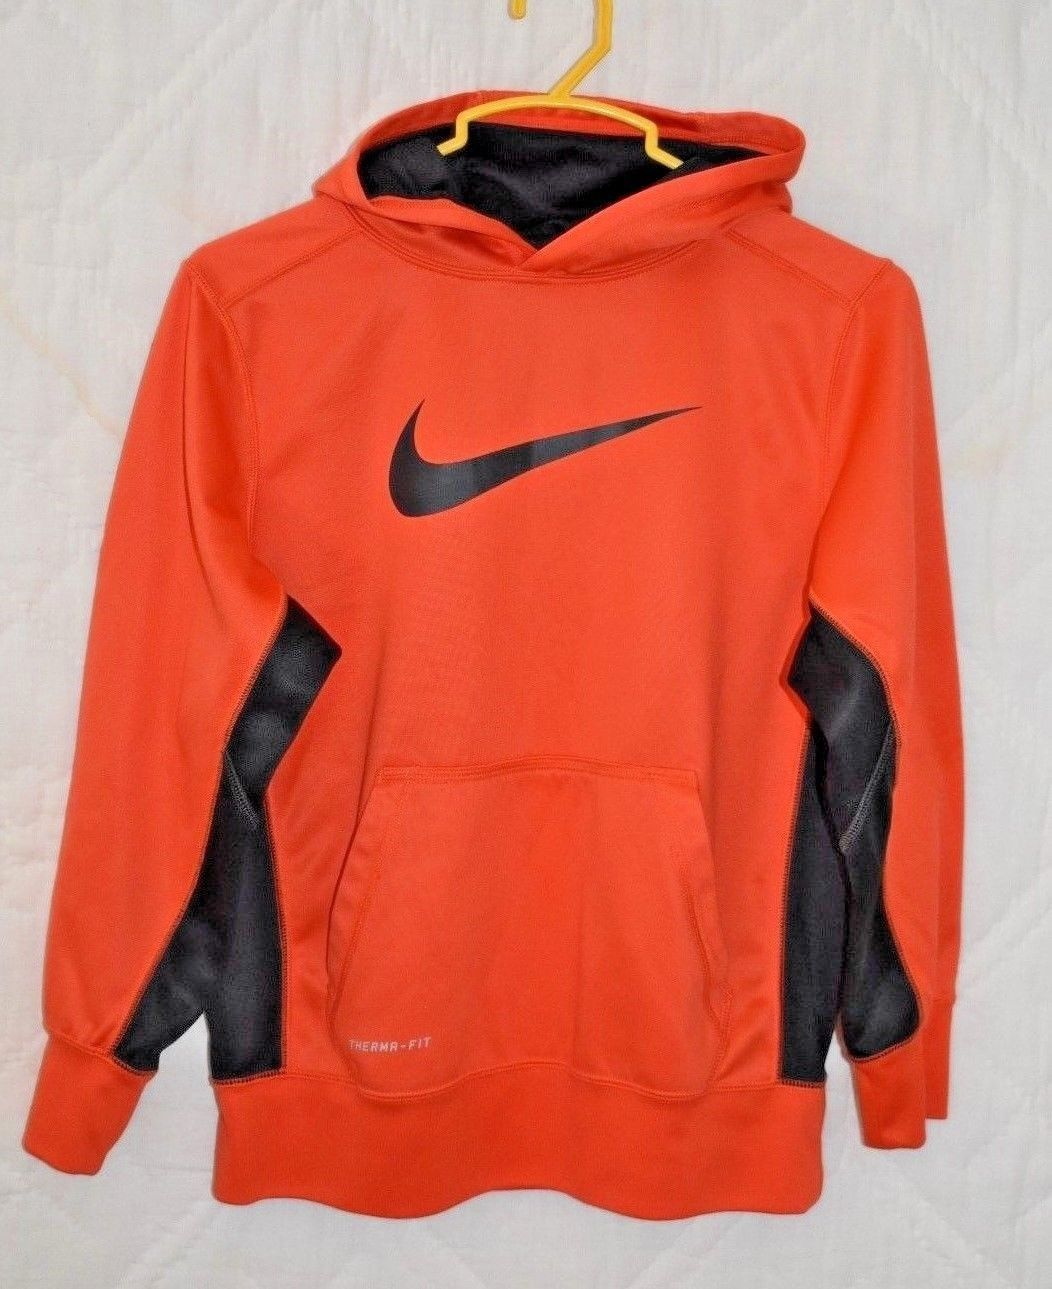 18a9b03c13ff Nike Therma-fit Boys Pullover Hoodie and 50 similar items. 57